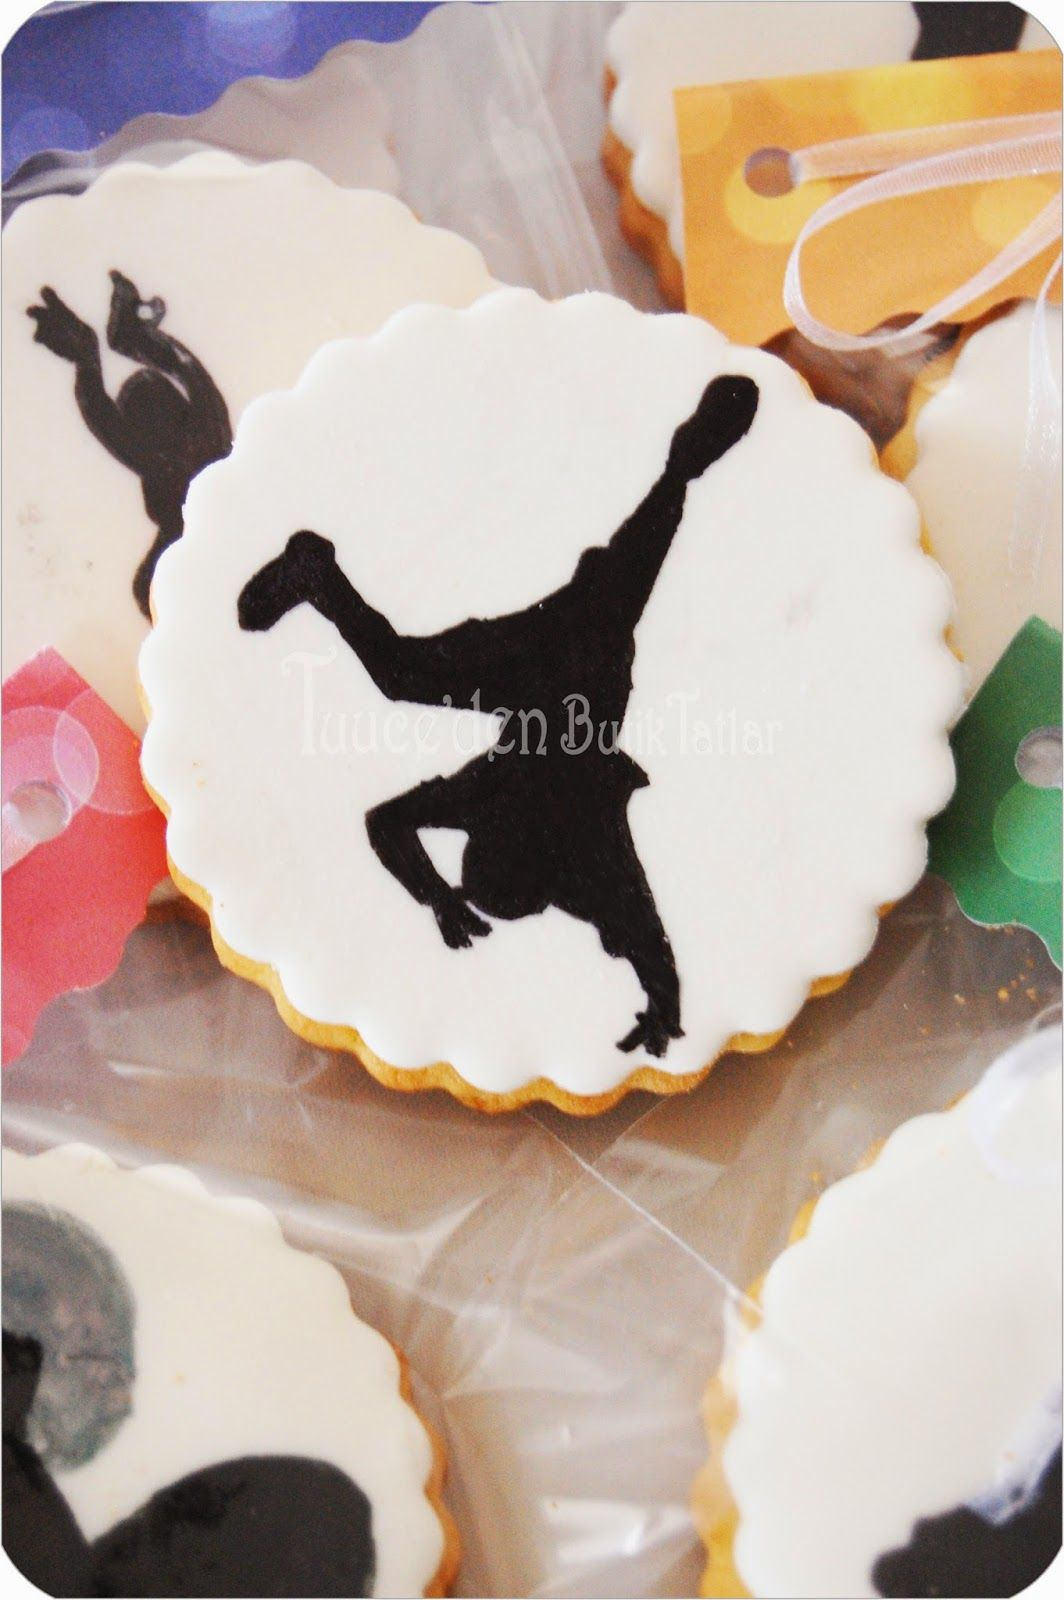 Painted silhouette Hip Hop cookie.